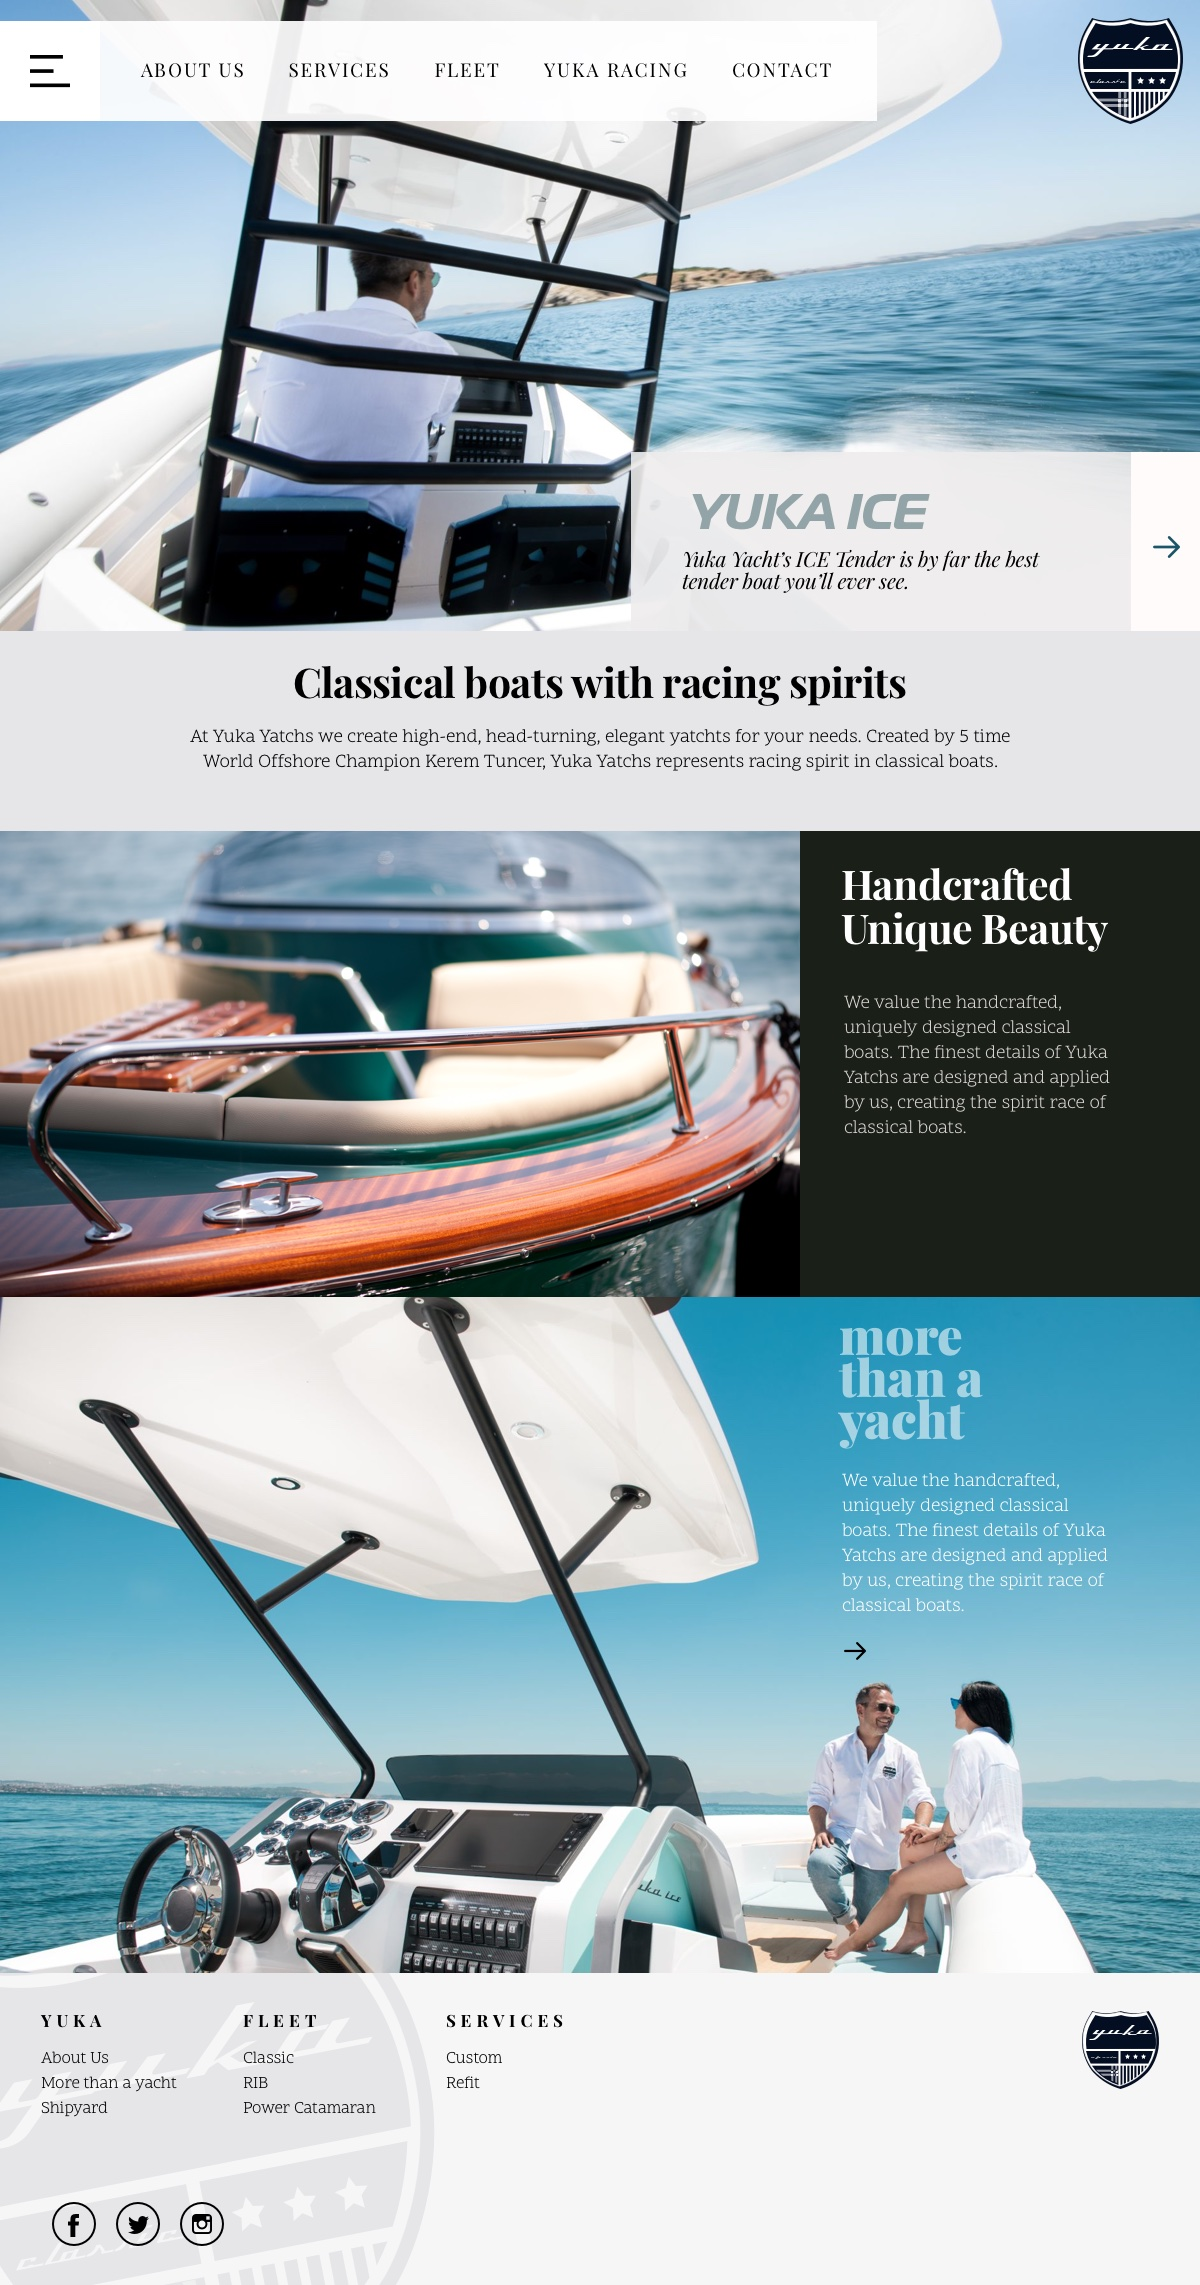 Yuka Yachts - UI,UX Design & Wordpress Customization by Gokcin Onur